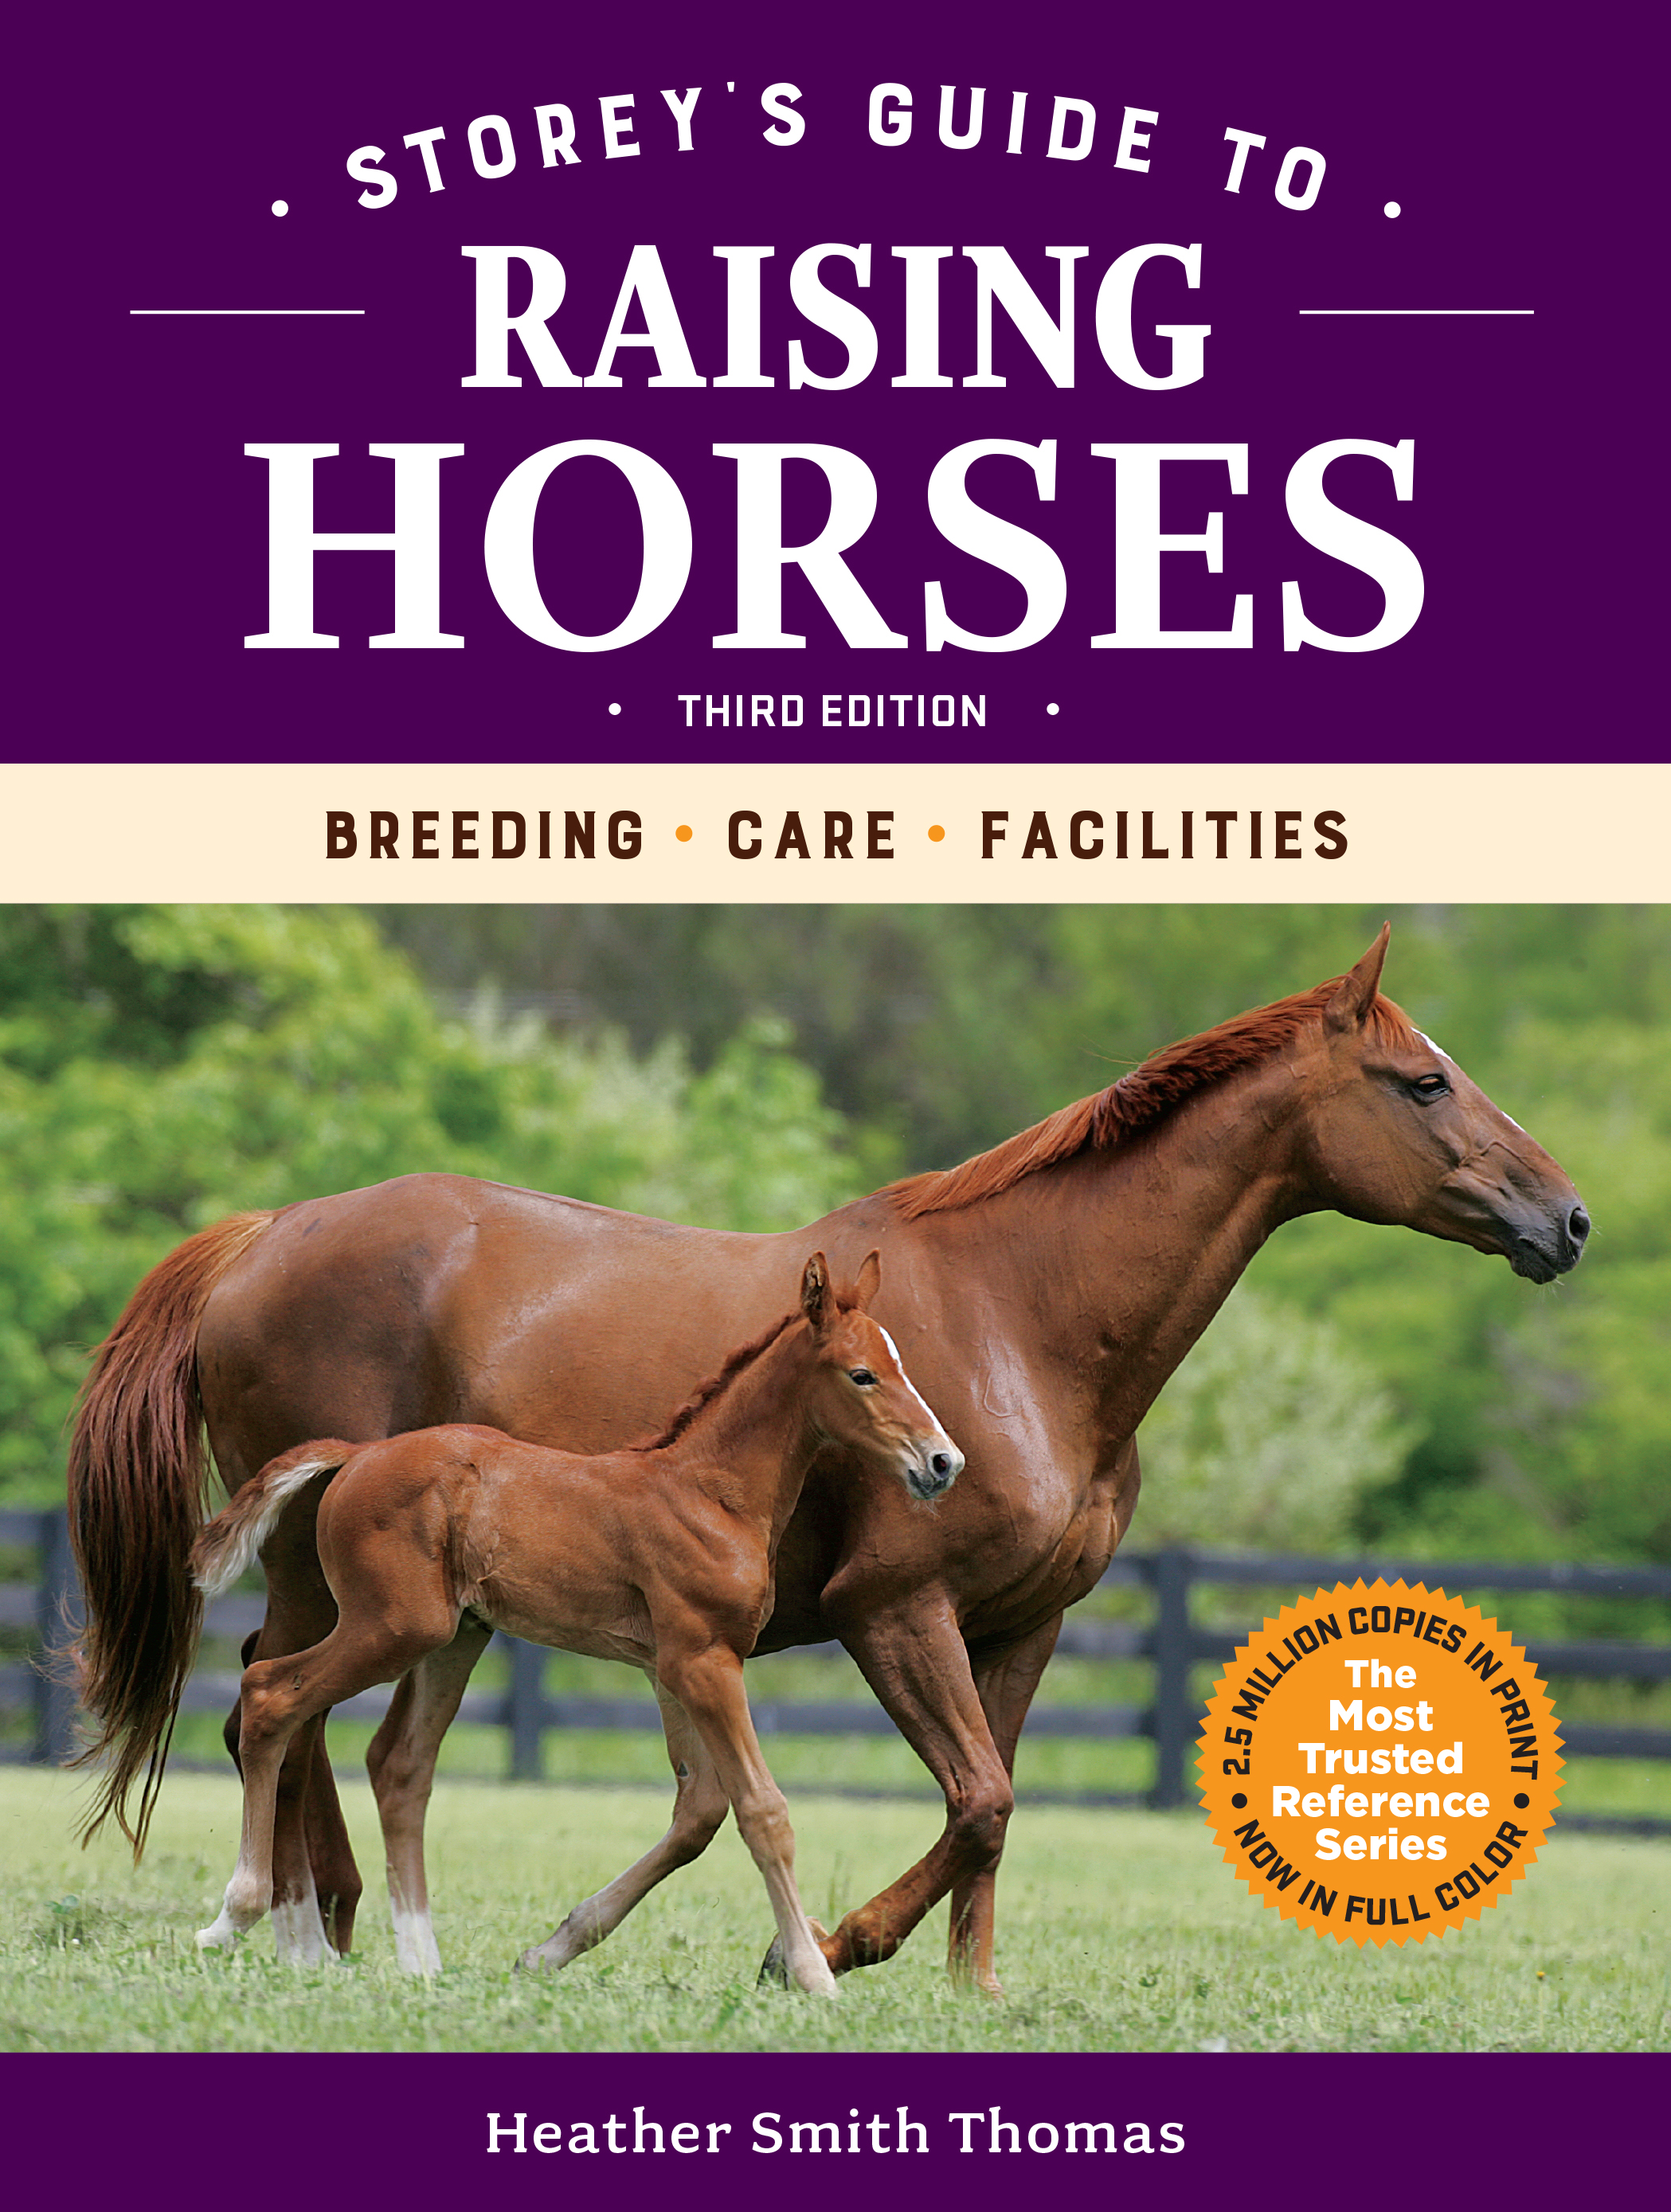 Storey's Guide to Raising Horses, 3rd Edition Breeding, Care, Facilities - Heather Smith Thomas